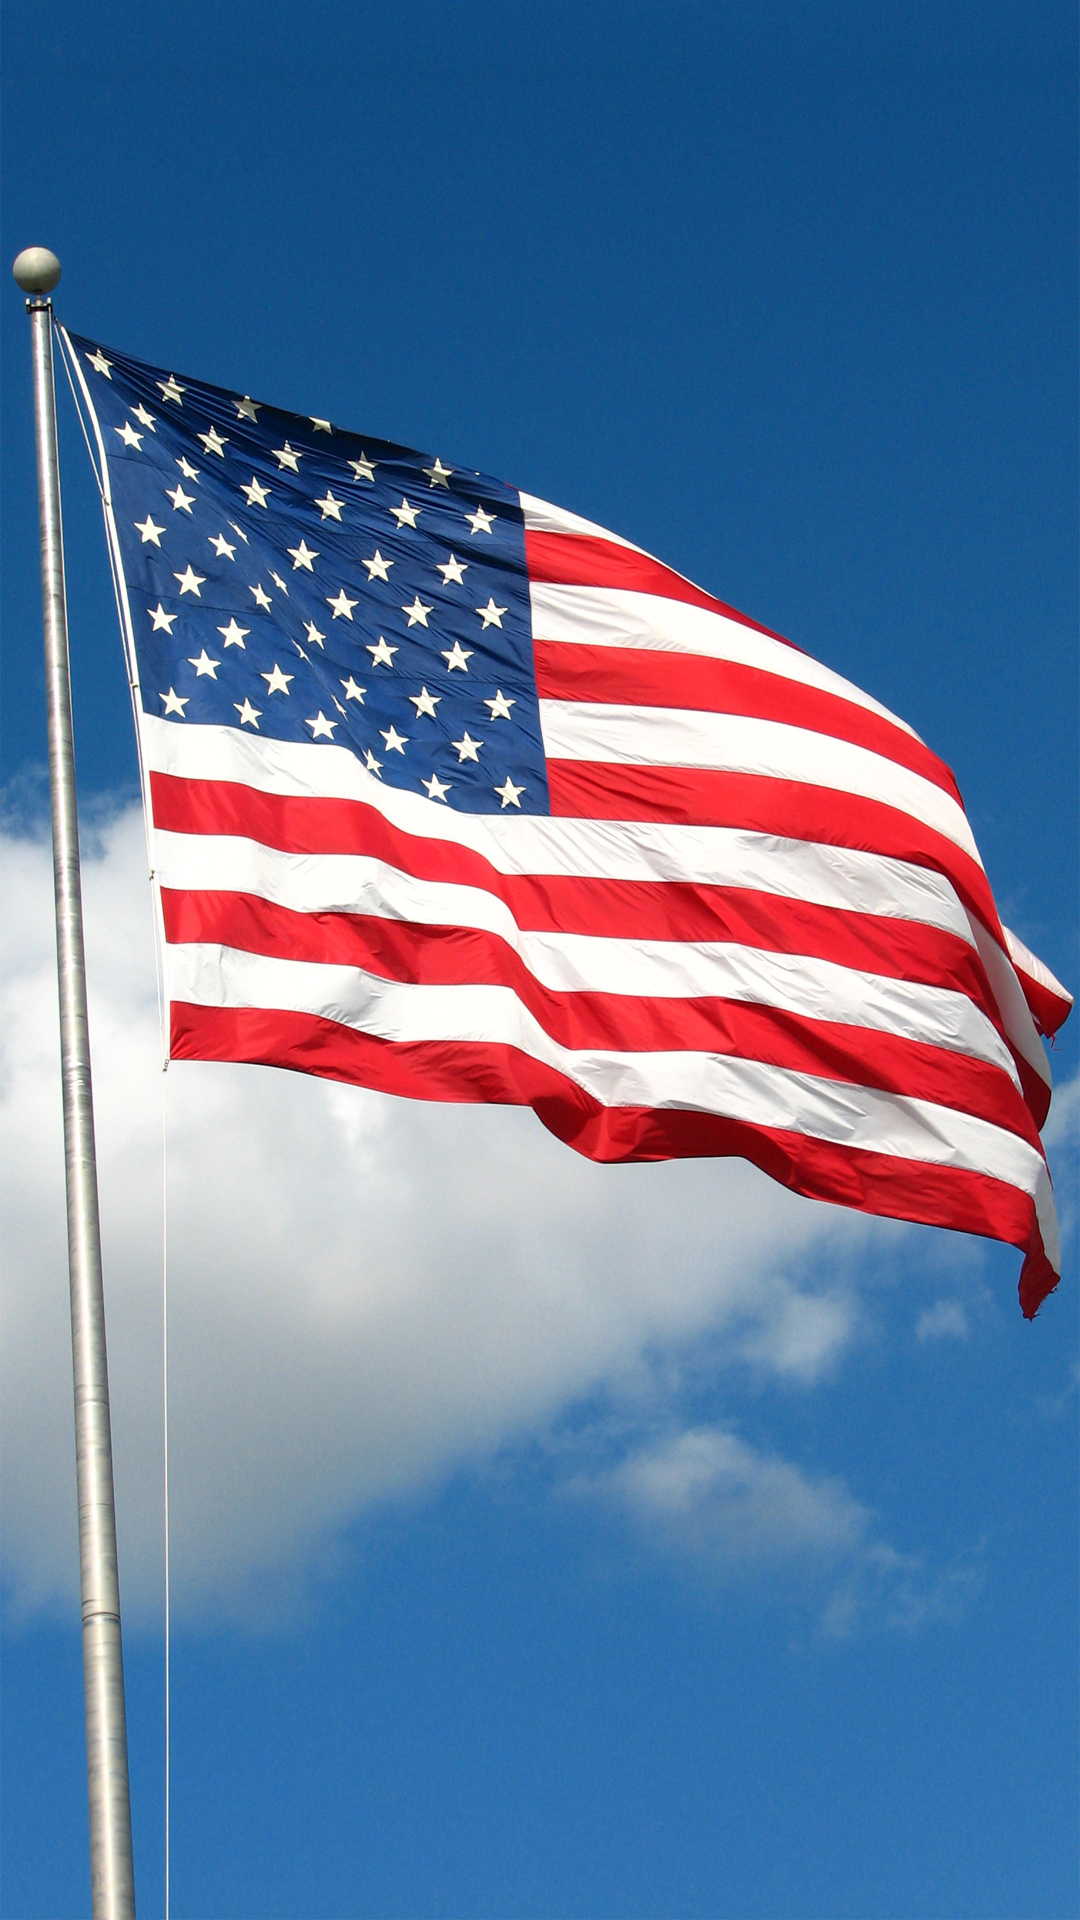 USA flag   Best htc one wallpapers and easy to download 1080x1920